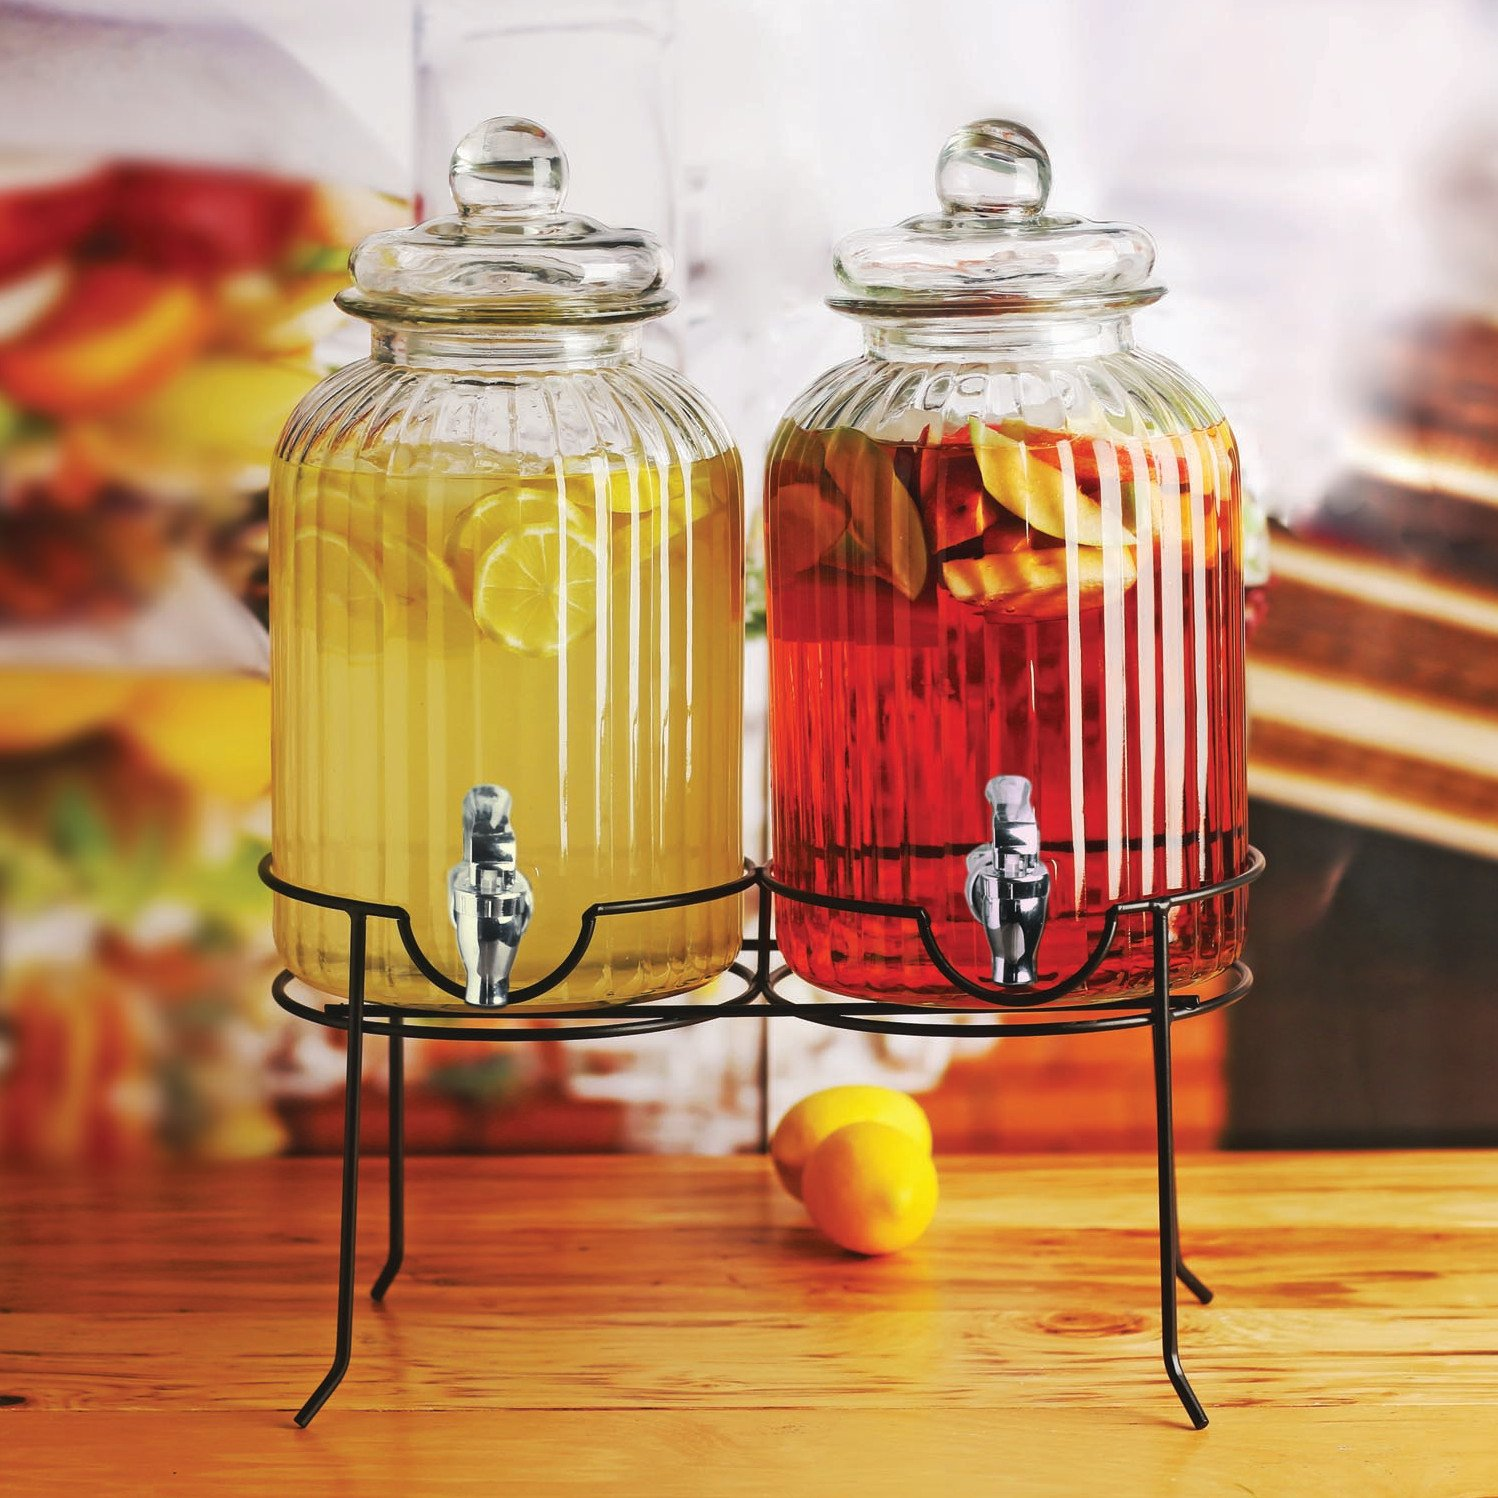 Circleware 66927 Sun Tea Mason Jar Double Glass Beverage Dispensers with Metal Stand and Lid Entertainment Kitchen Glassware for Water, Juice, Wine, Kombucha and Cold Drinks 1.3 Gallon Each Ridge by Circleware (Image #3)